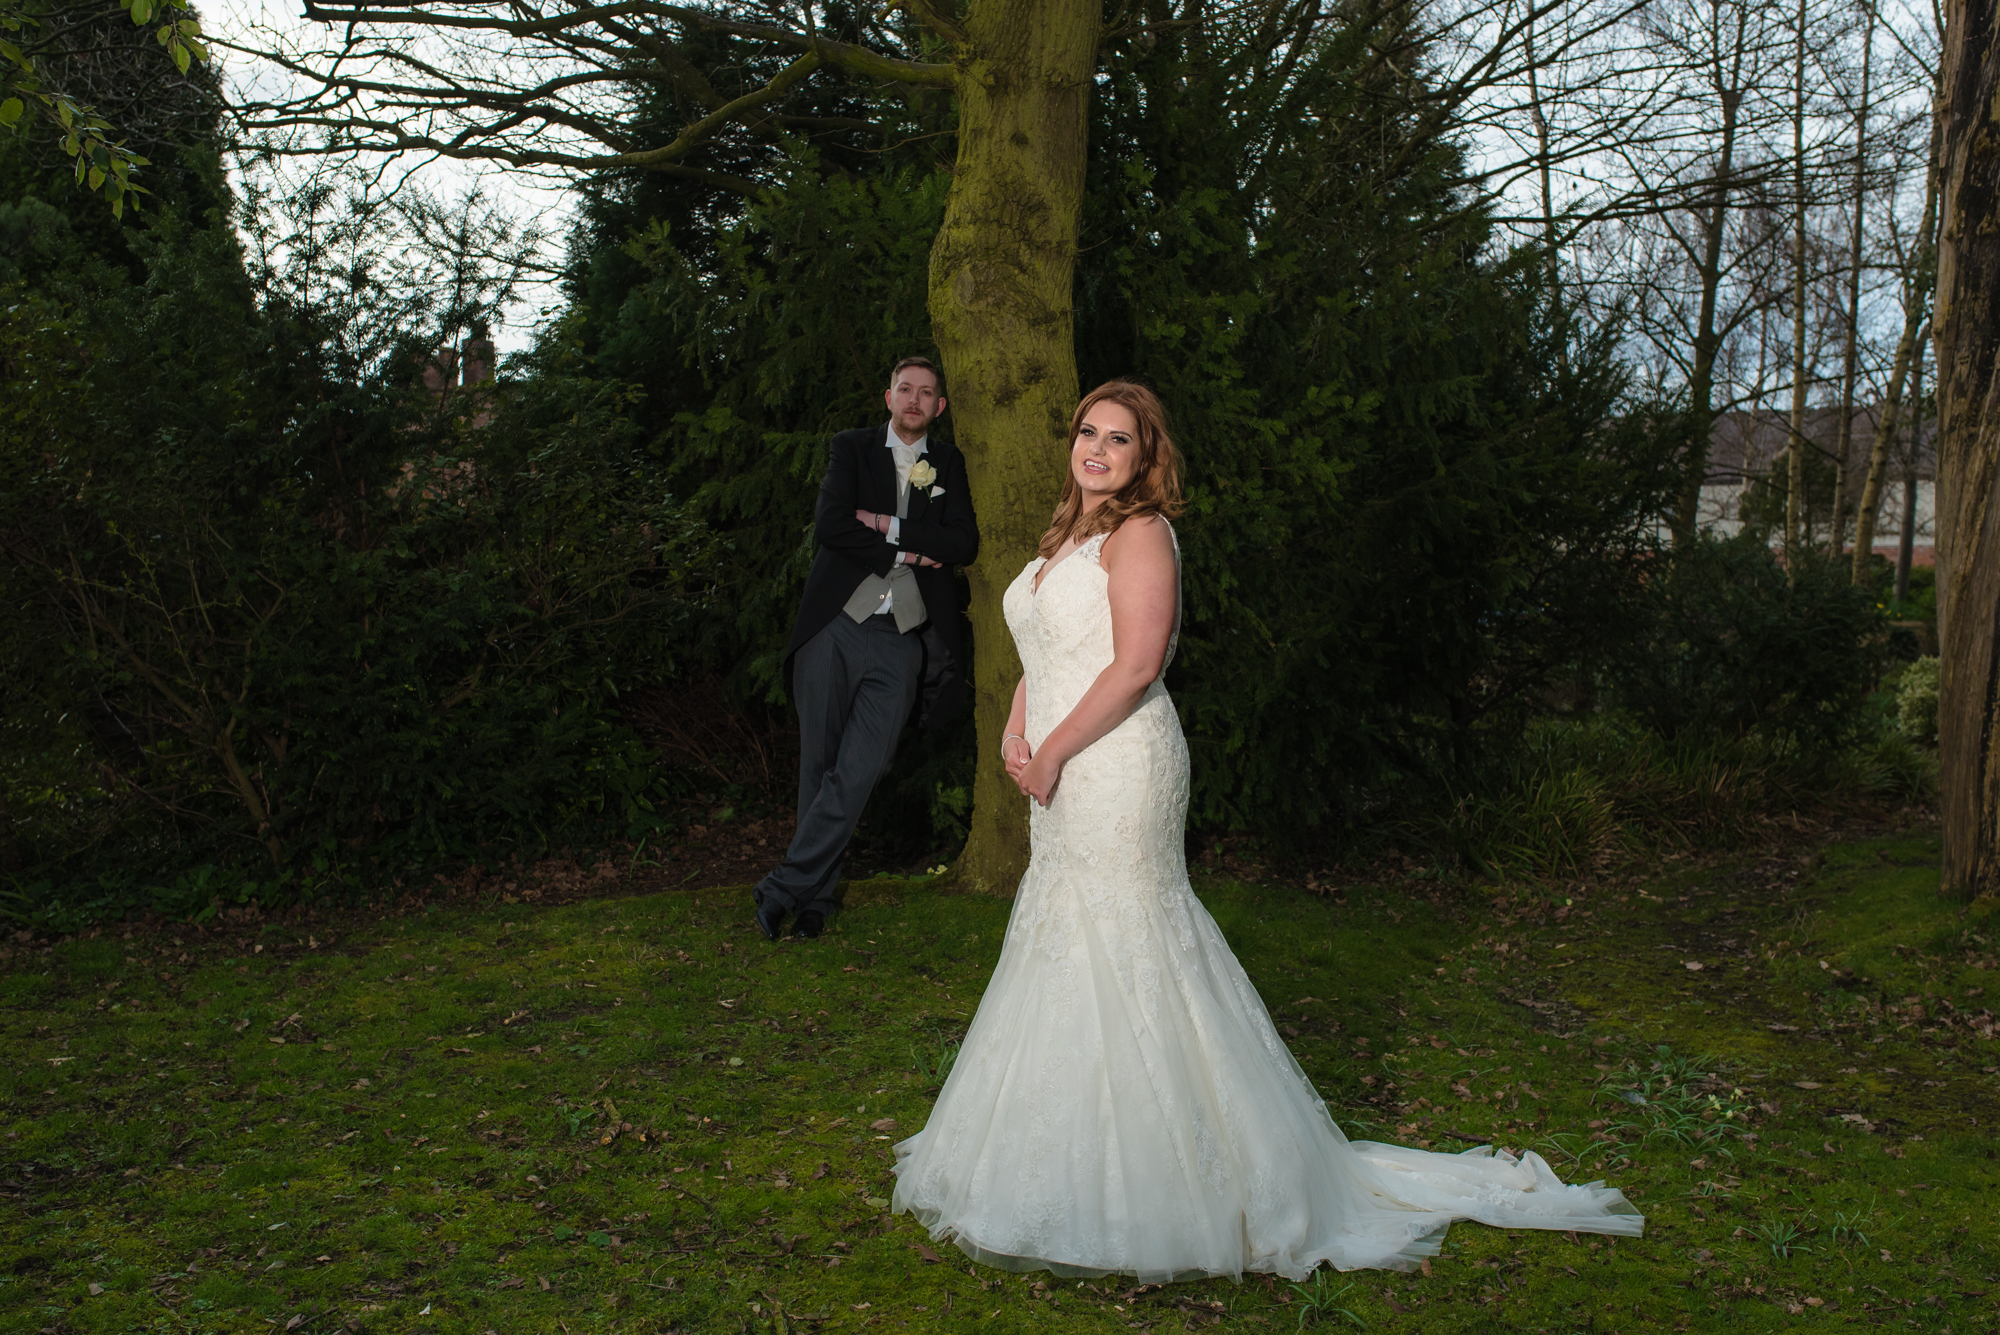 The bride and groom stand by a tree in the grounds of crabwall manor.